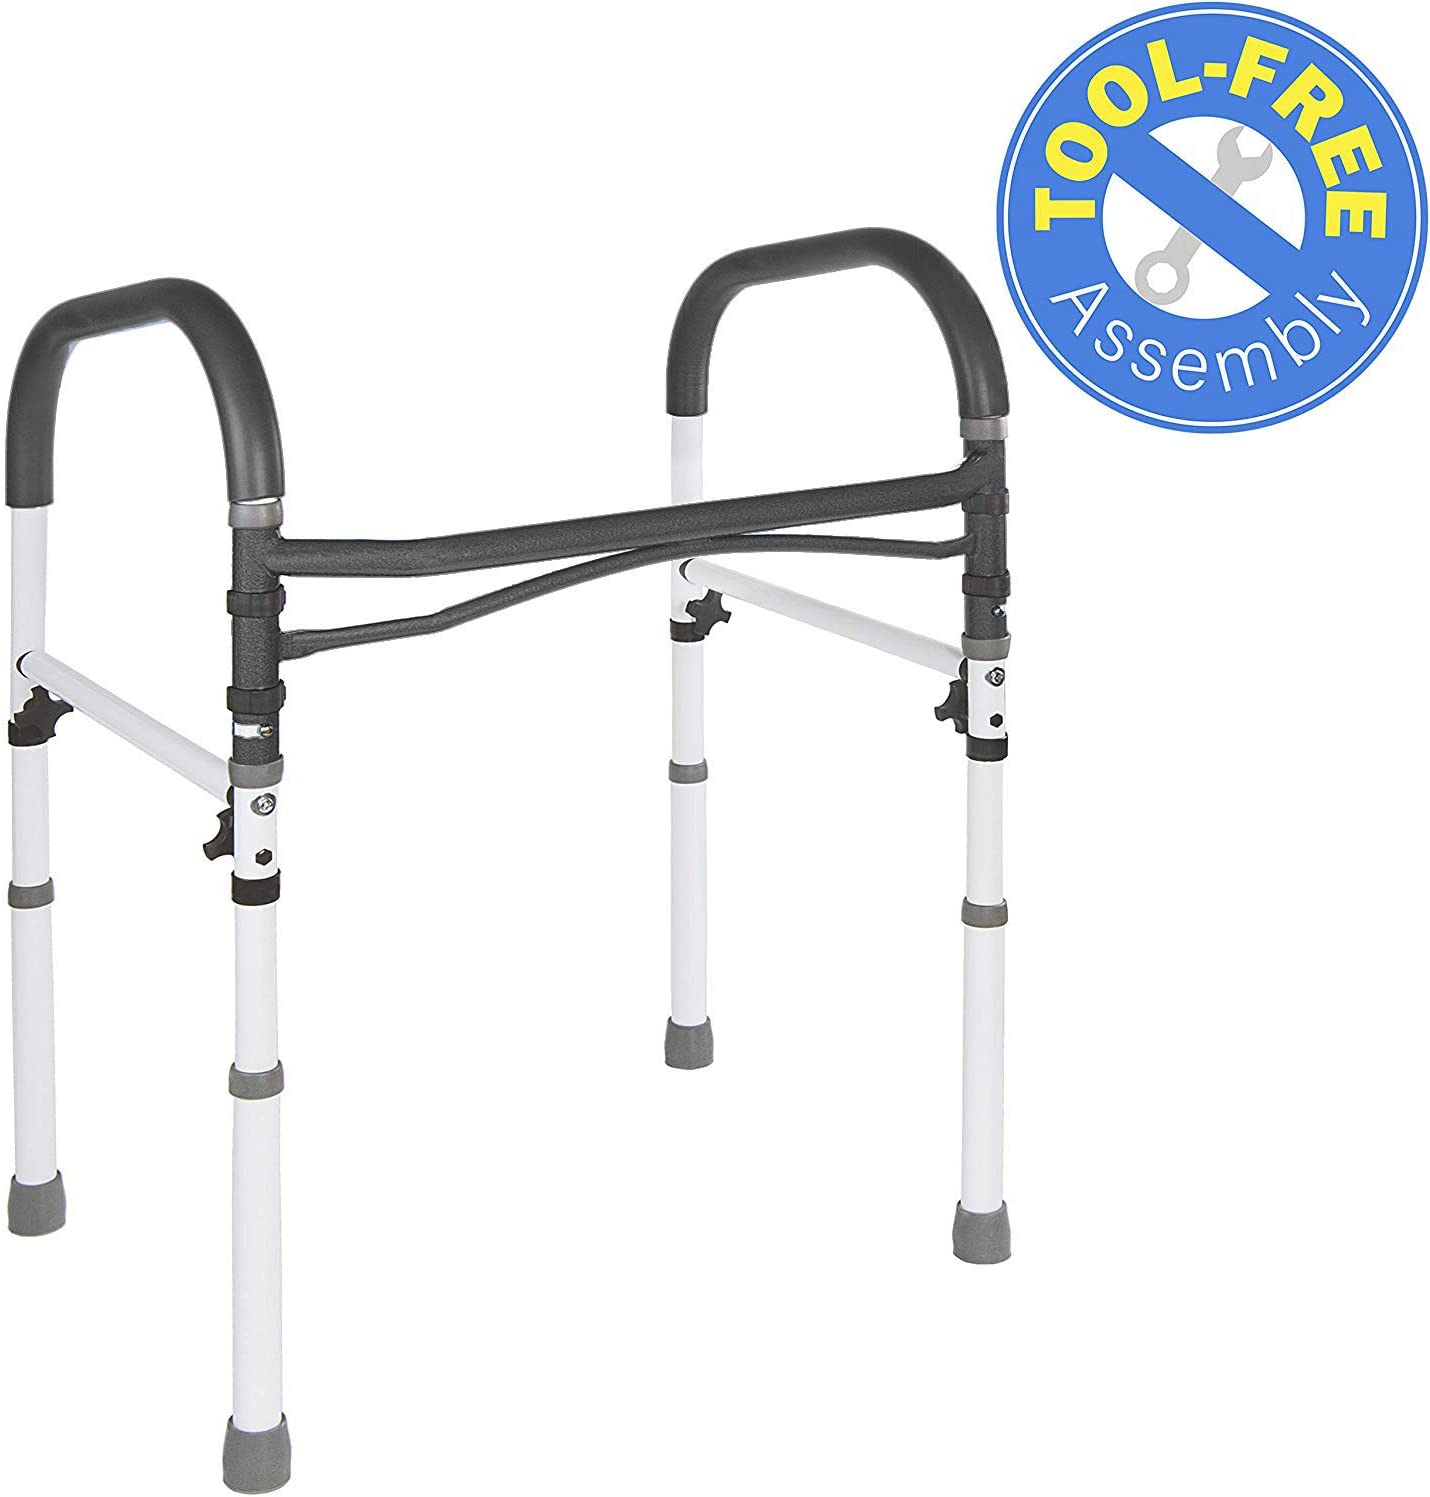 best toilet safety rails: Vaunn Deluxe Bathroom Safety Toilet Rail